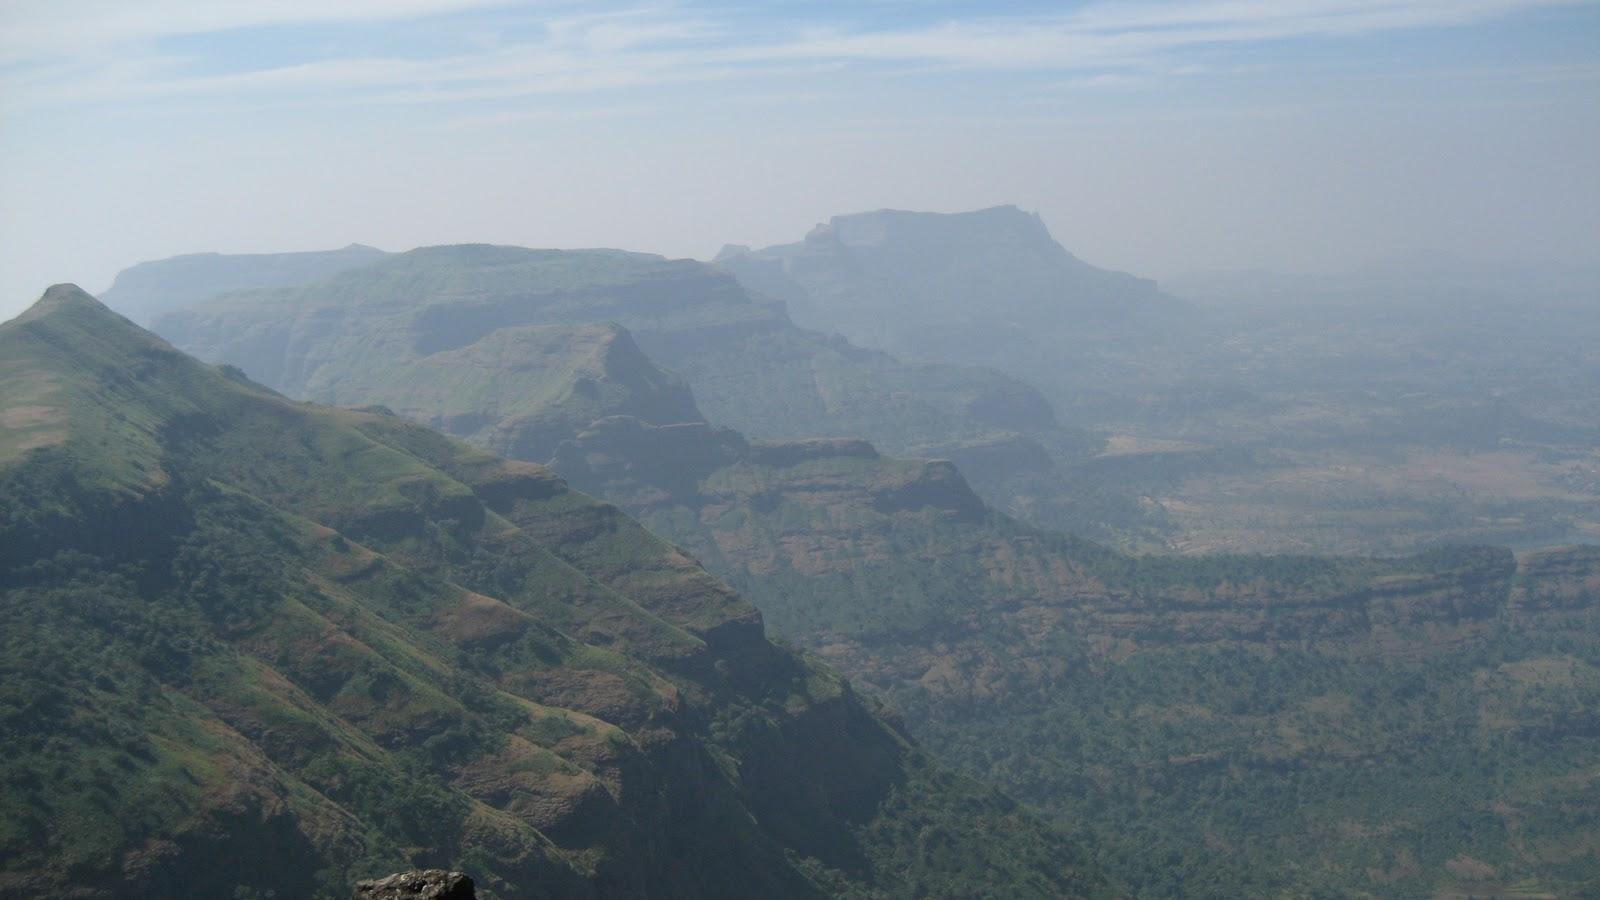 Sahyadri Mountains Any Mountains of Sahyadris